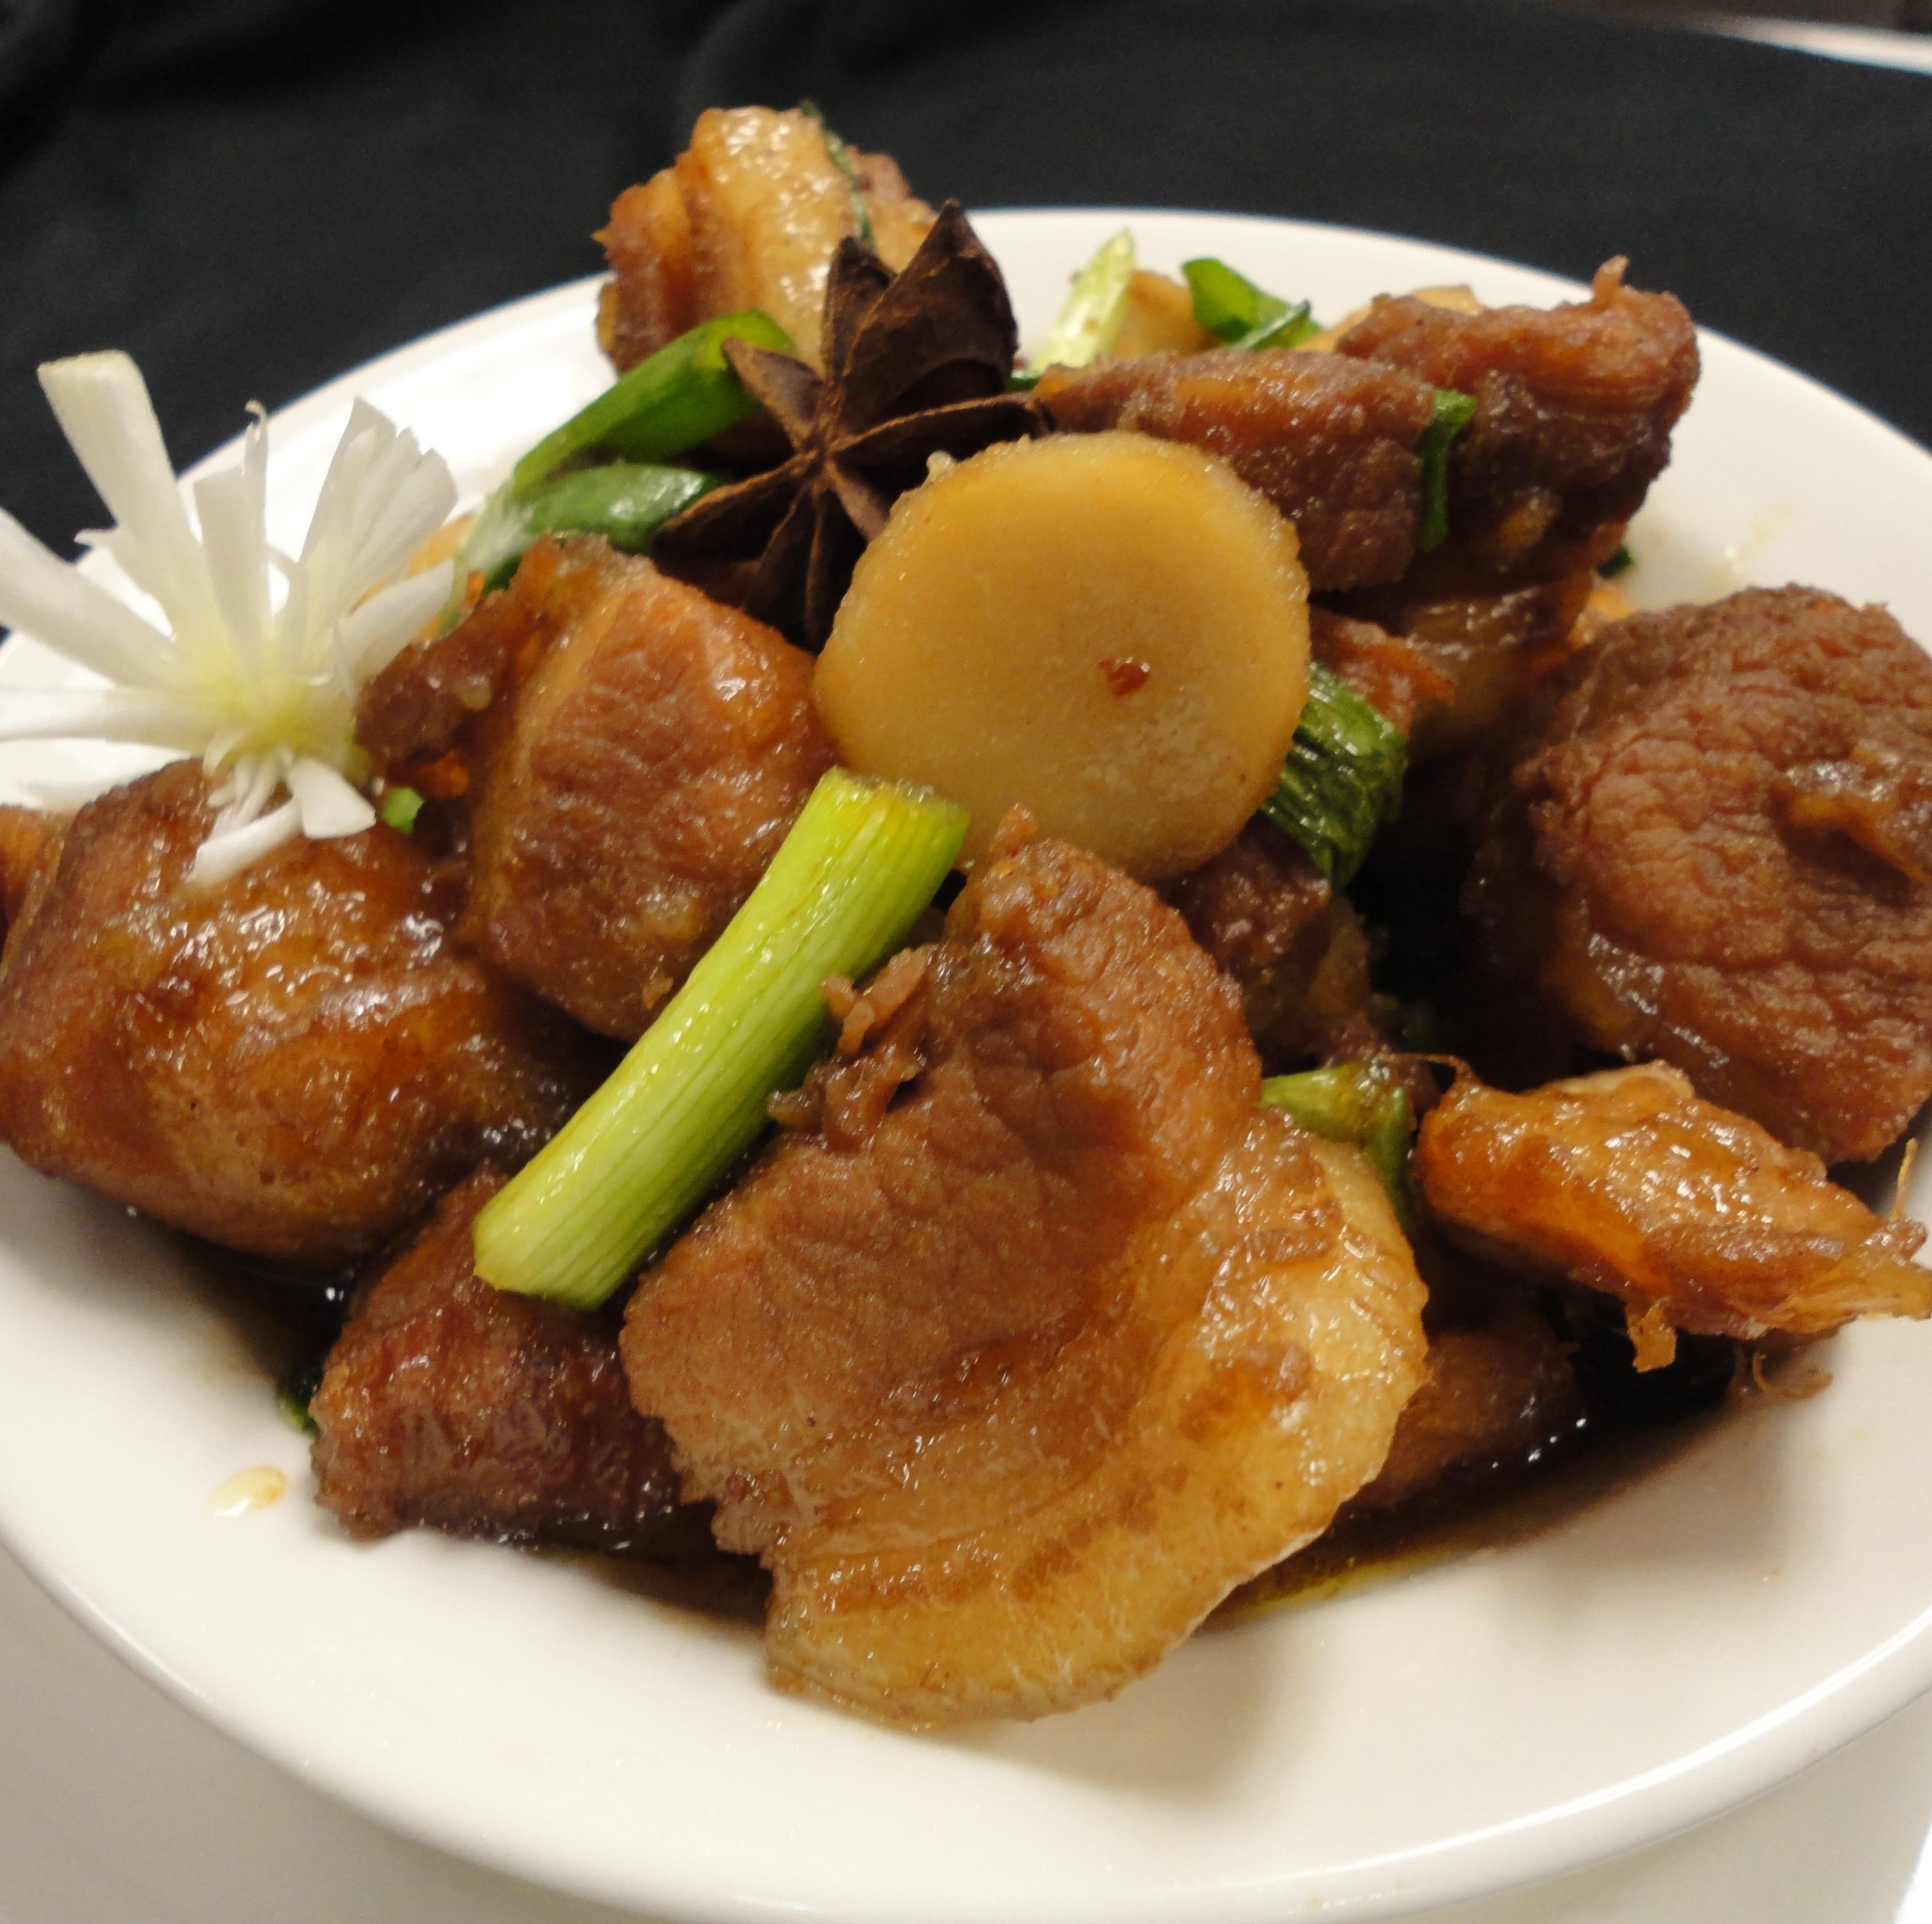 Red Braised Pork Belly -- pork belly braised with ginger, garlic, chile peppers, soy and rice wine -- is one of the dishes on the menu at this month's International Dinner at Florida Tech's Panther Dining Hall.